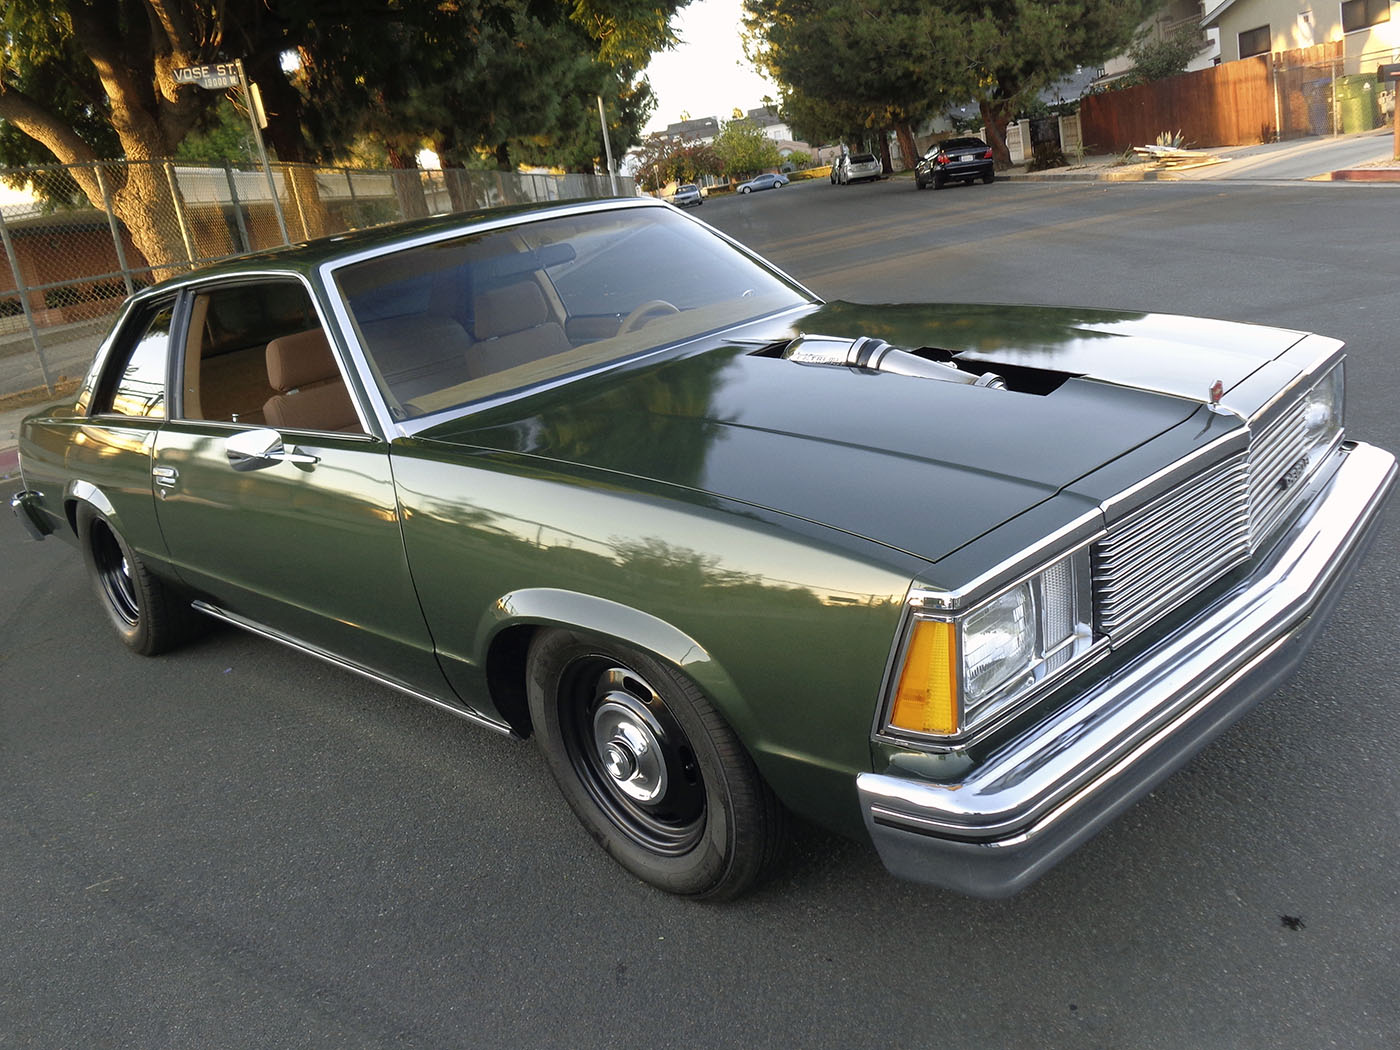 For 1980 Chevy Malibu With A Turbo Lsx